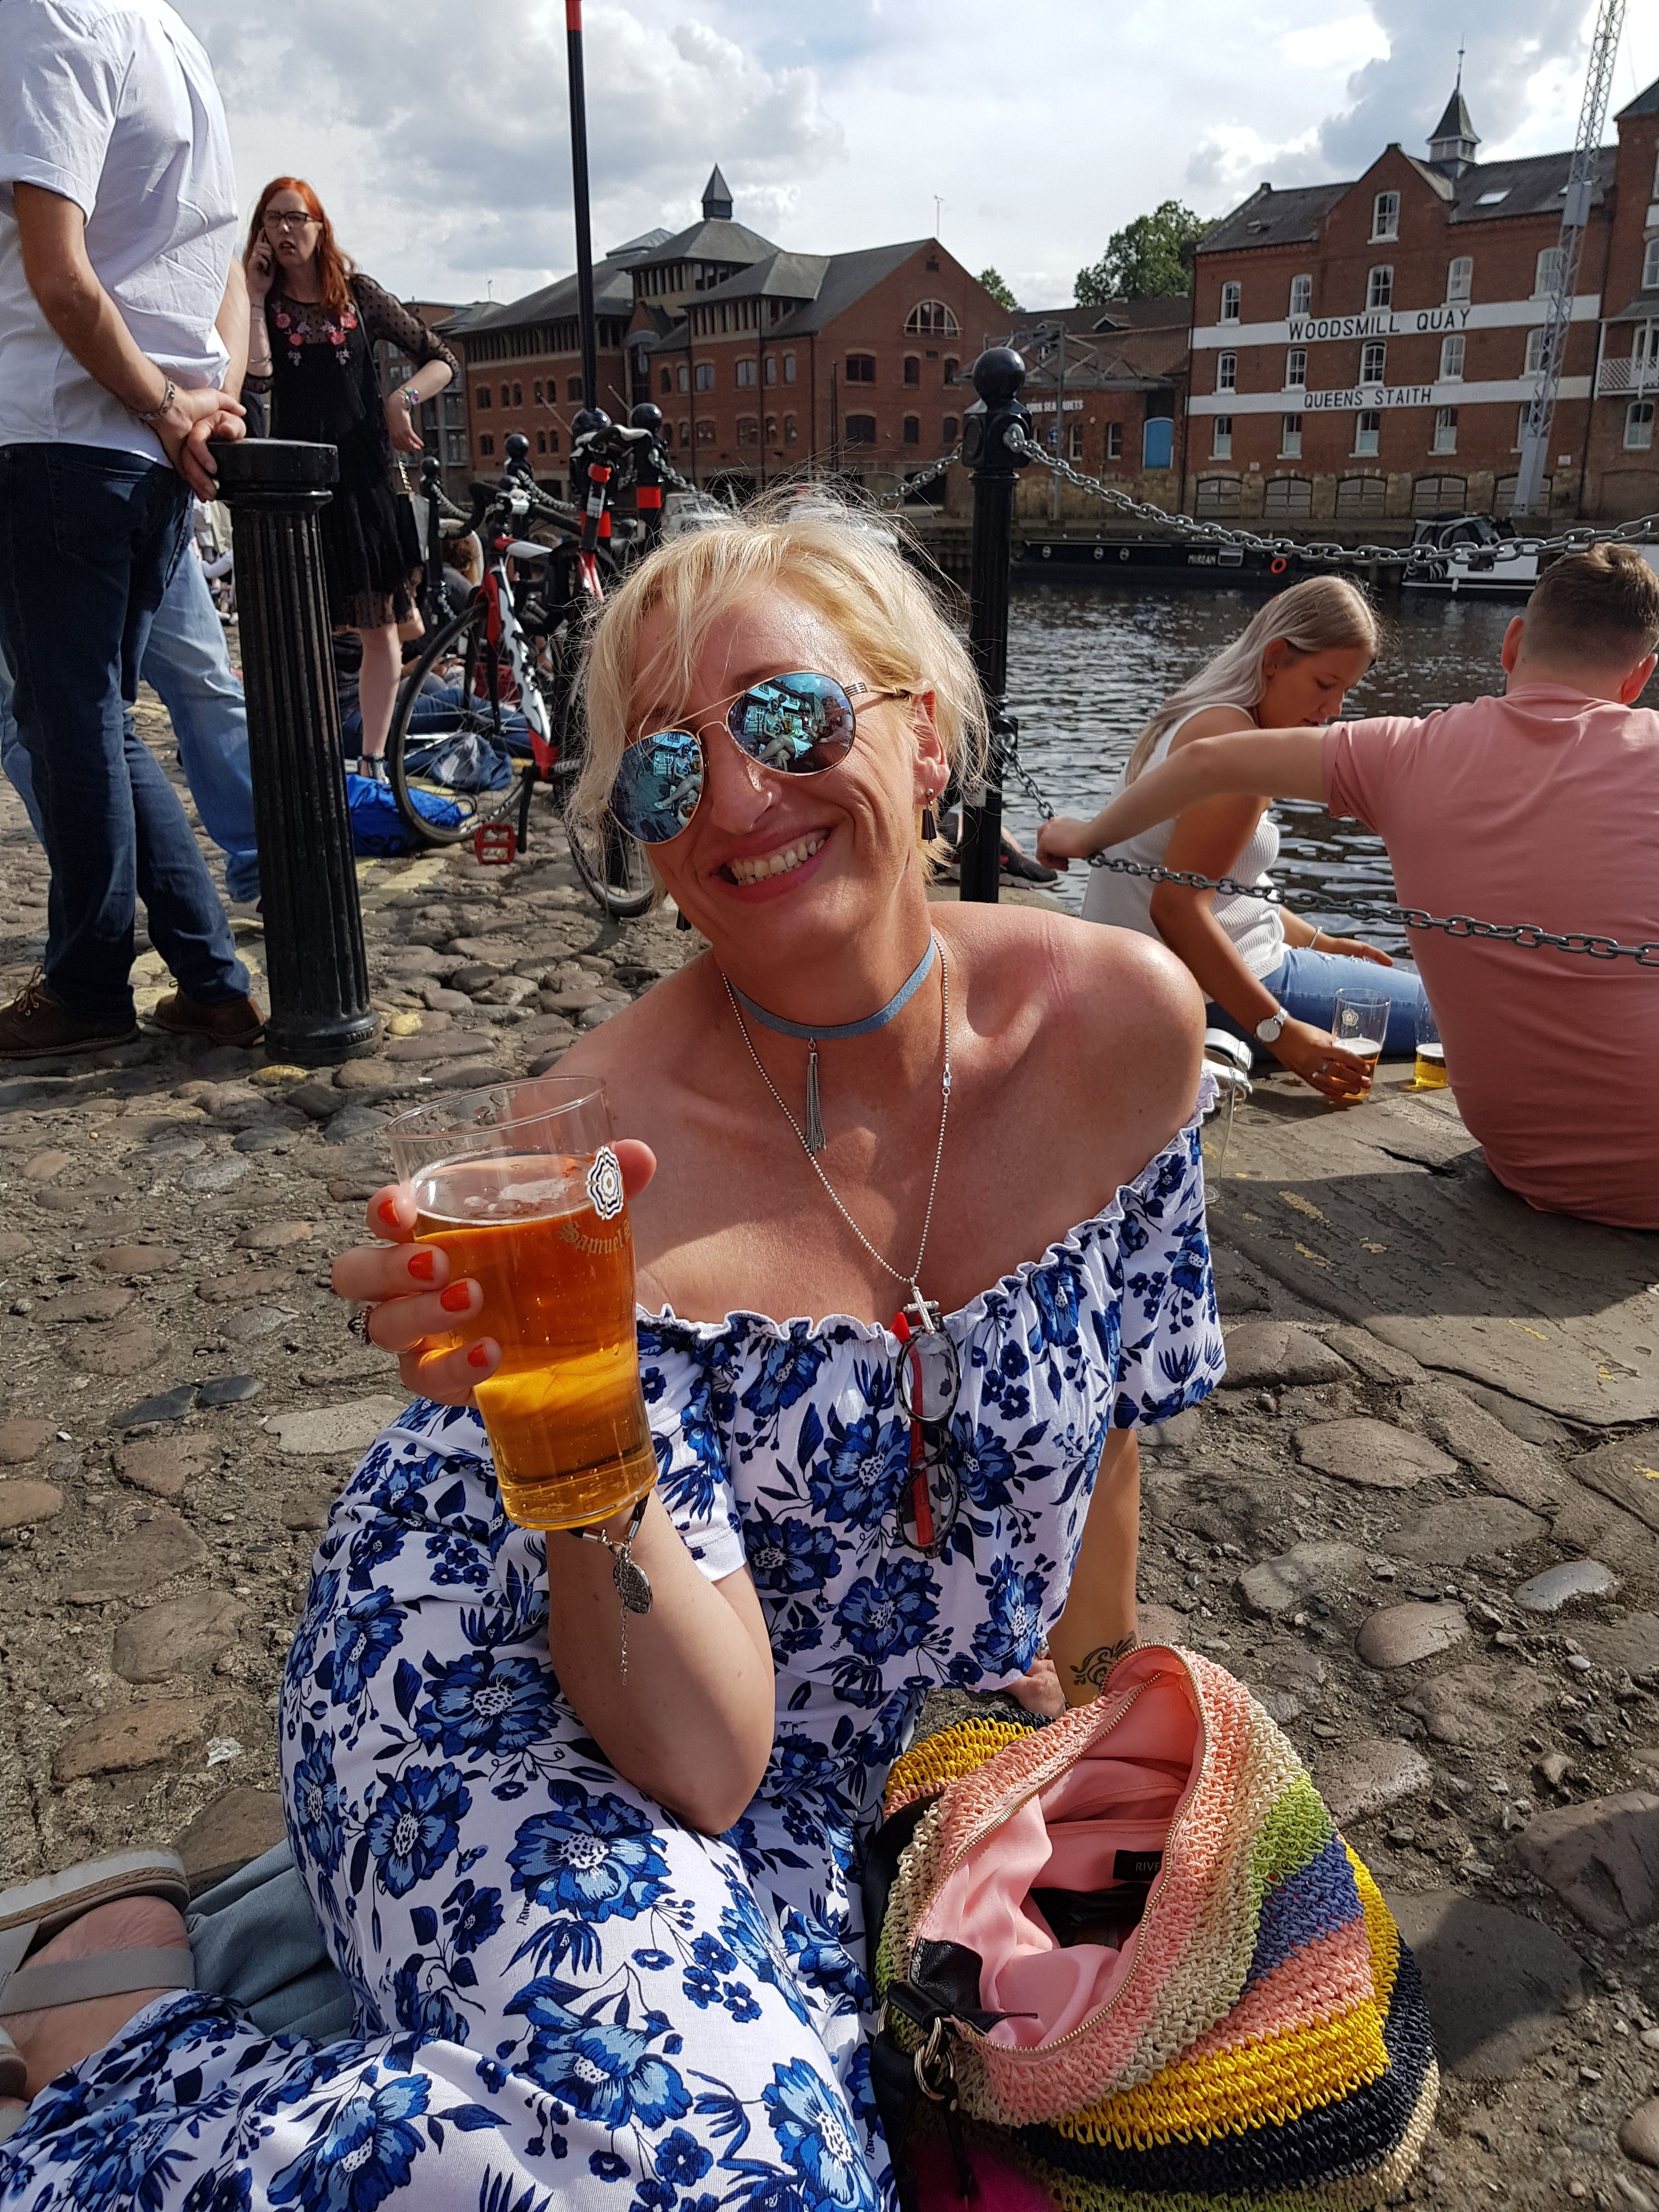 newcastle upon tyne single hispanic girls Get to know our community of spaniards in newcastle✓ attend events for  spaniards✓  situated on the north bank of the river tyne in the northeast of  england,.